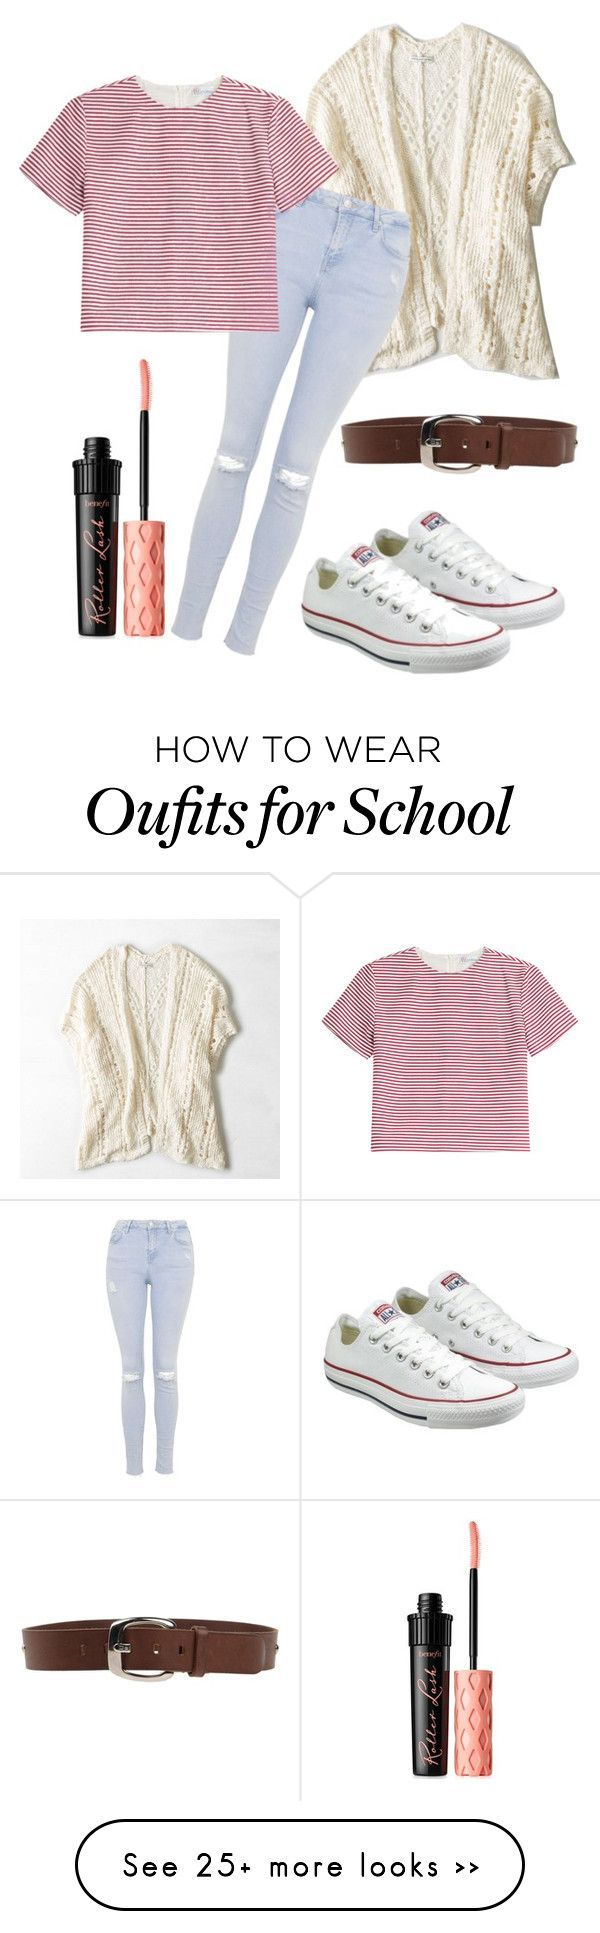 First day of school outfit by eemaj on Polyvore featuring American Eagle Outfitters, Topshop, RED Valentino, DG, Converse and Benefit